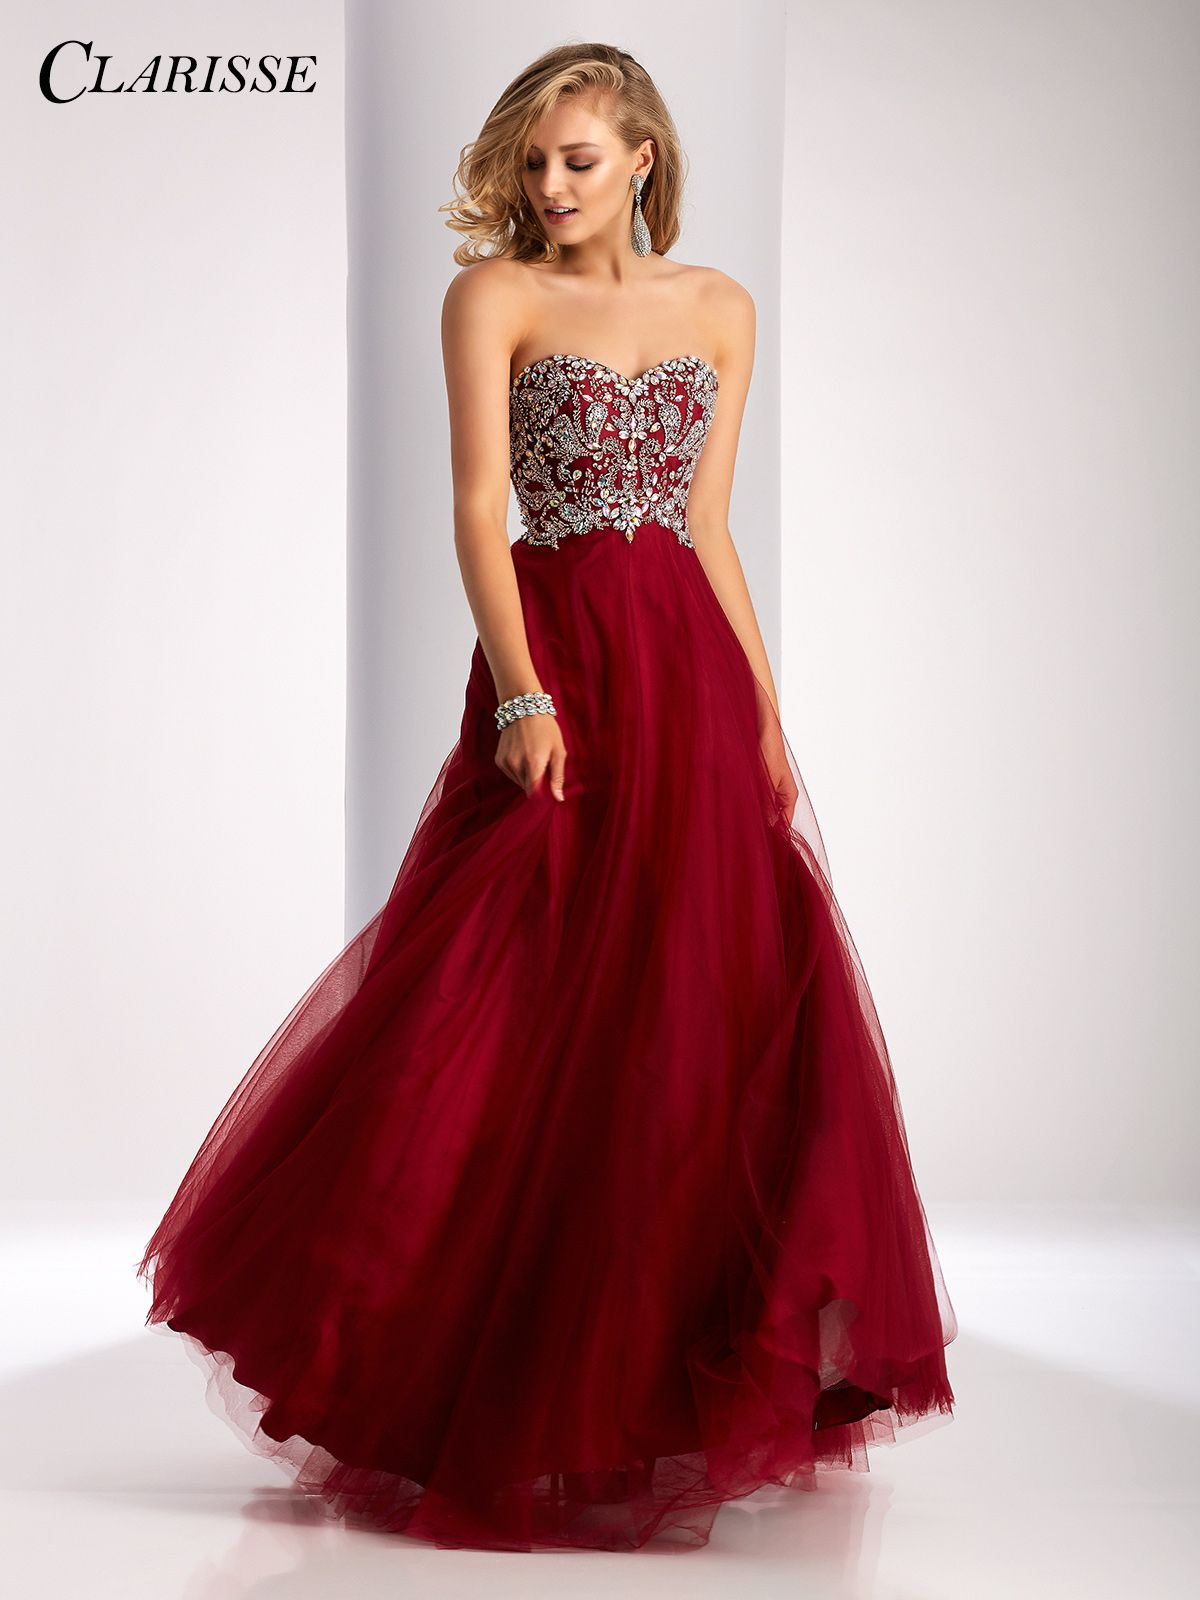 65f057de2f27a Clarisse 2017 prom dress style 3012. A classic strapless ball gown with a  sparkly bodice and lace up back. Available in four colors